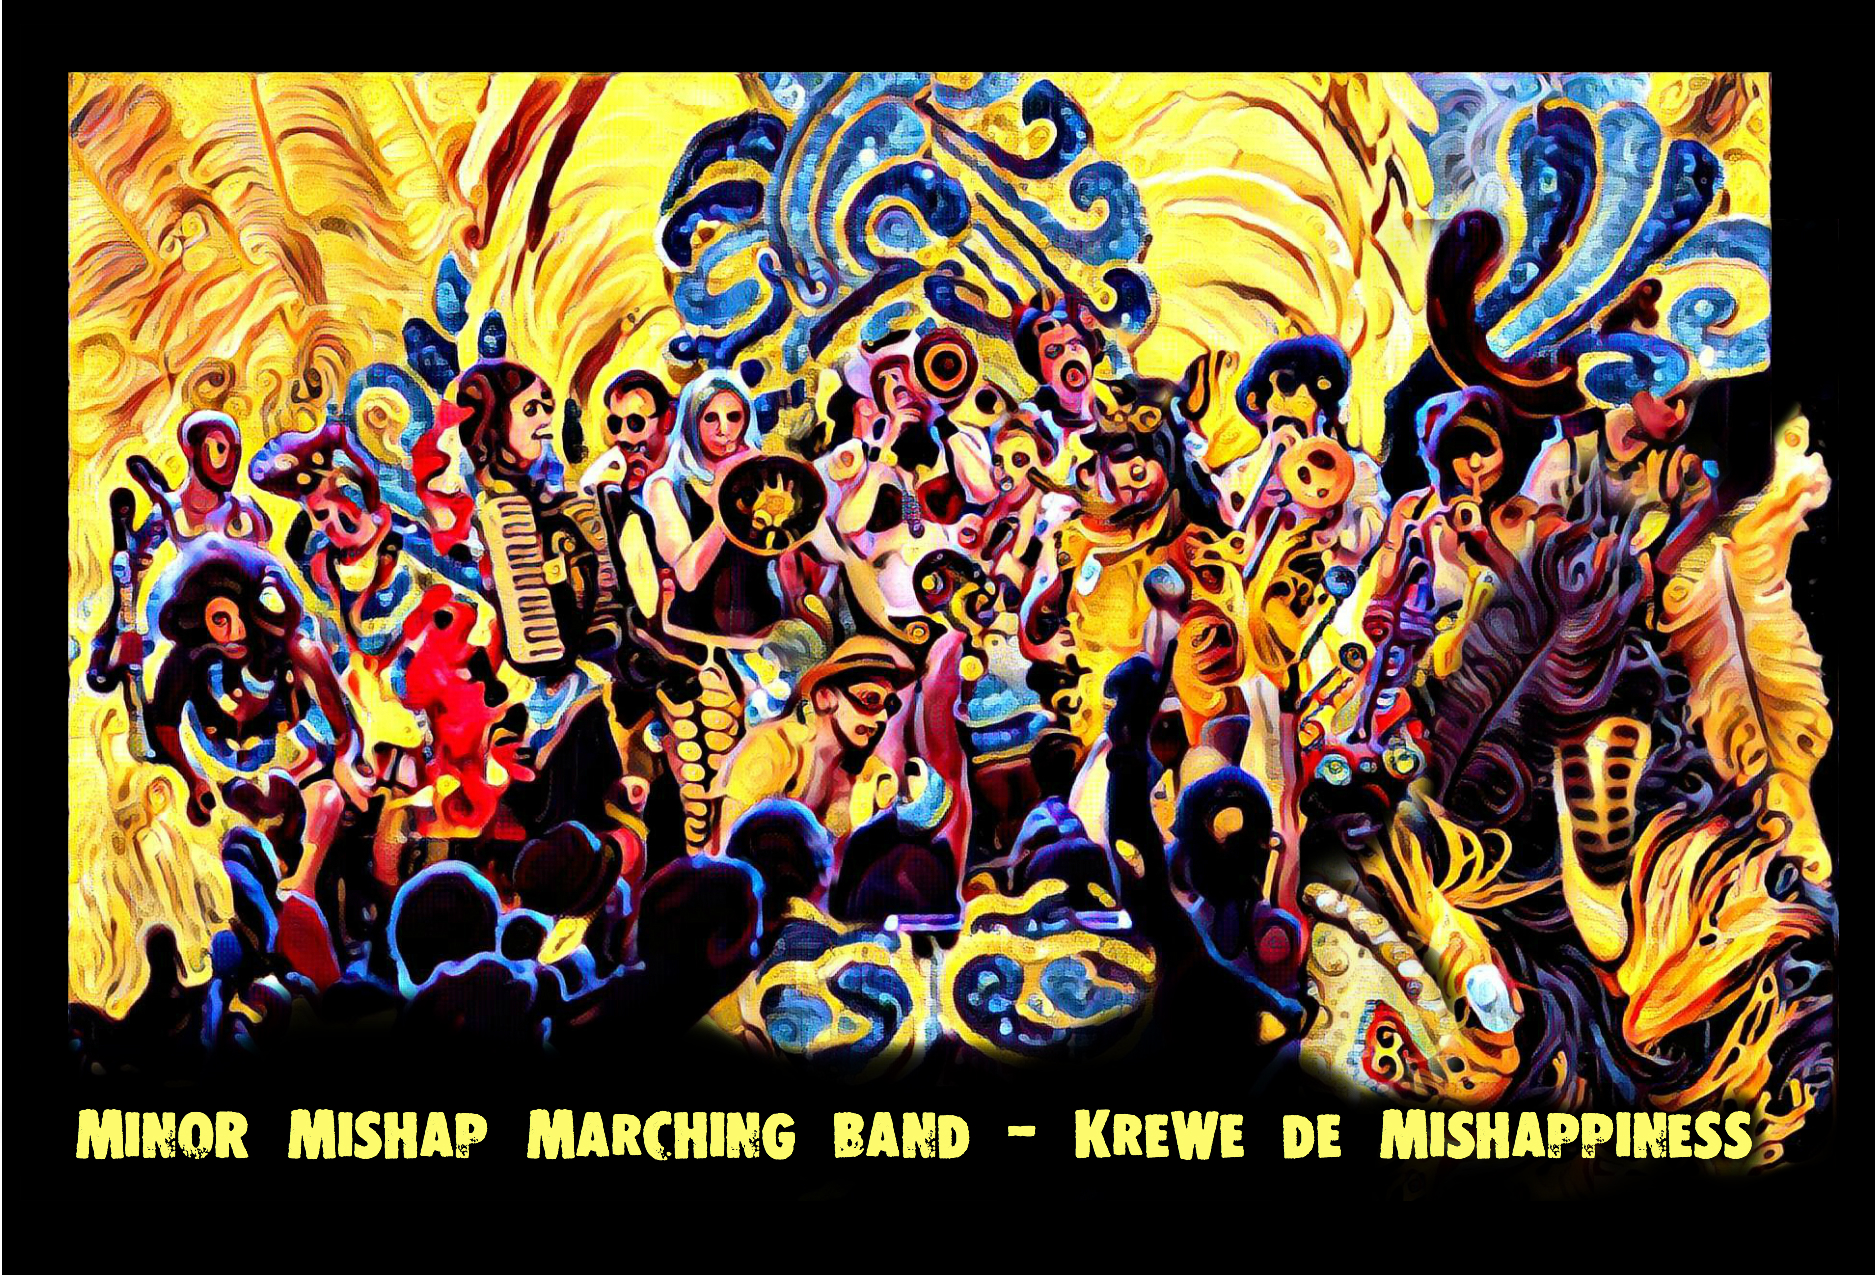 Minor Mishap Marching Band – a 25-piece renegade brass band